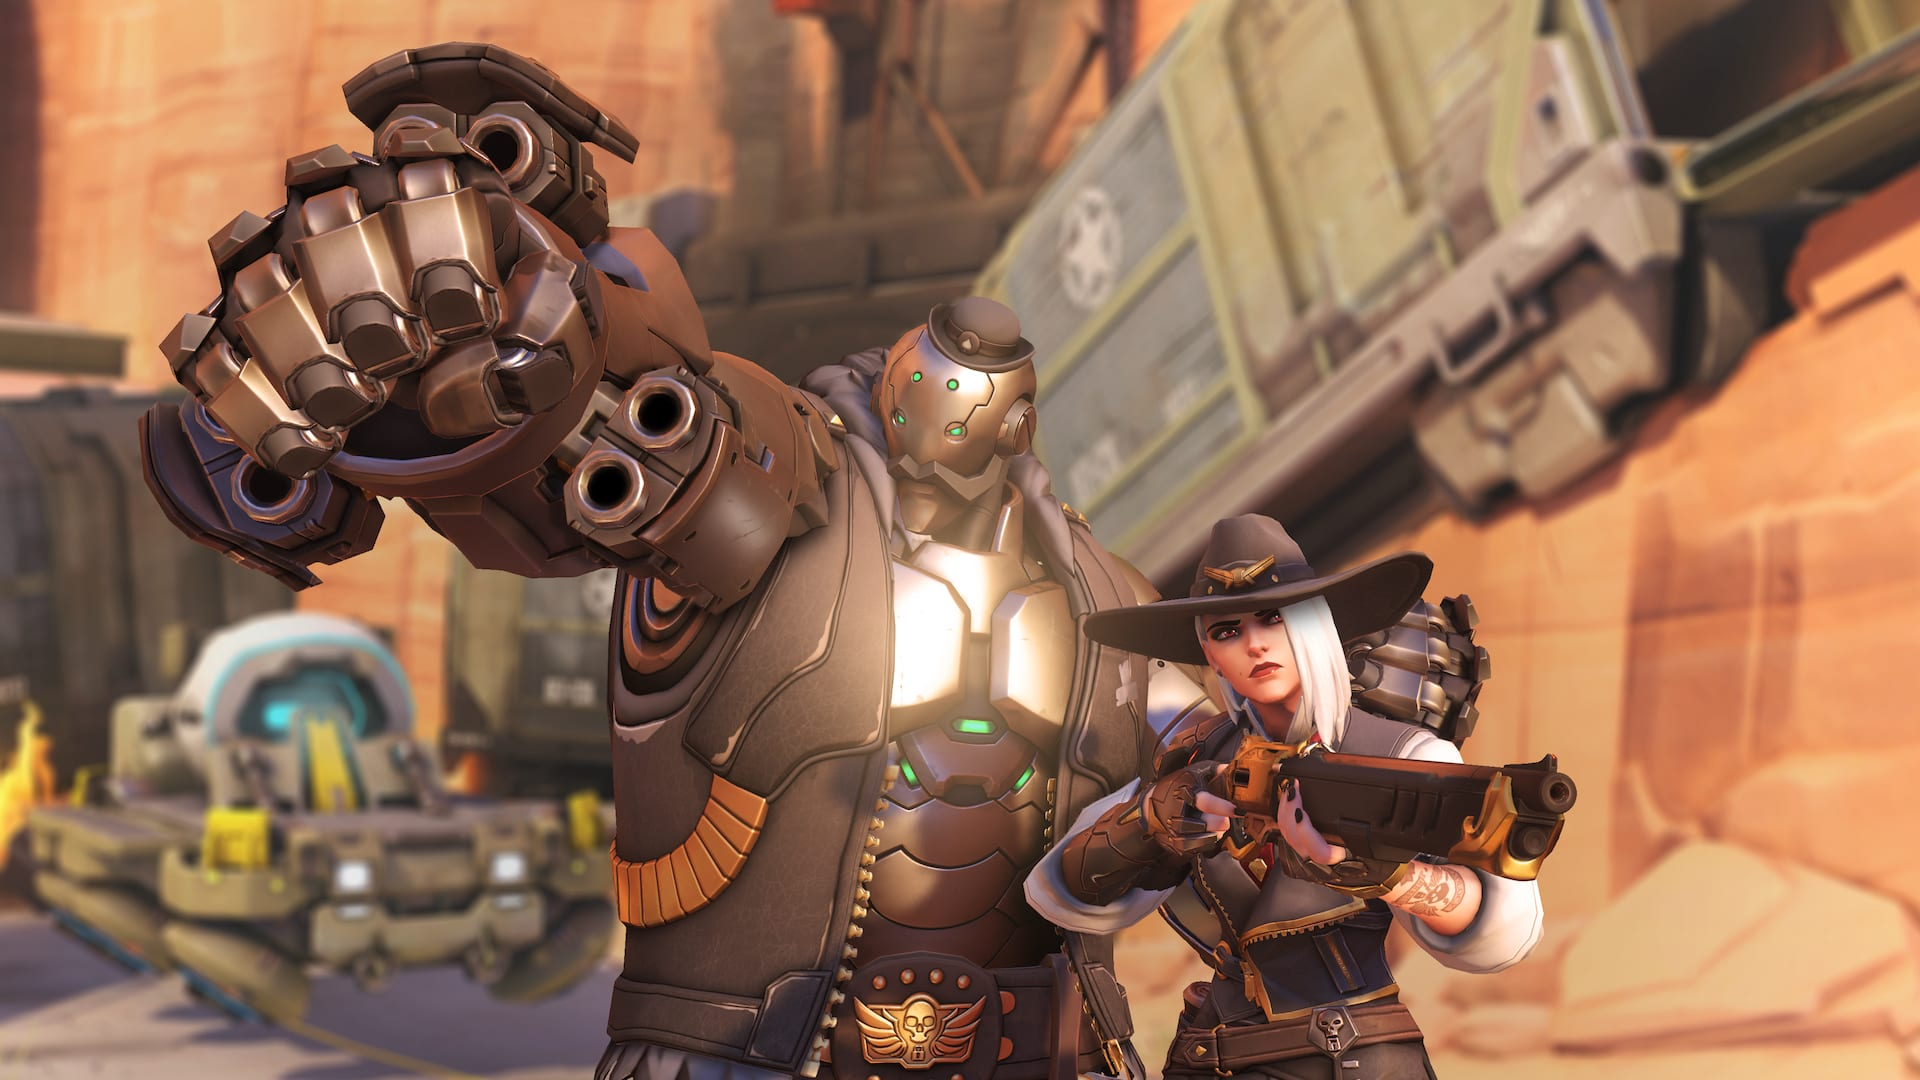 Overwatch fan Gbeast71 created a playable B.O.B. using the Workshop, sharing it to Reddit Thursday.